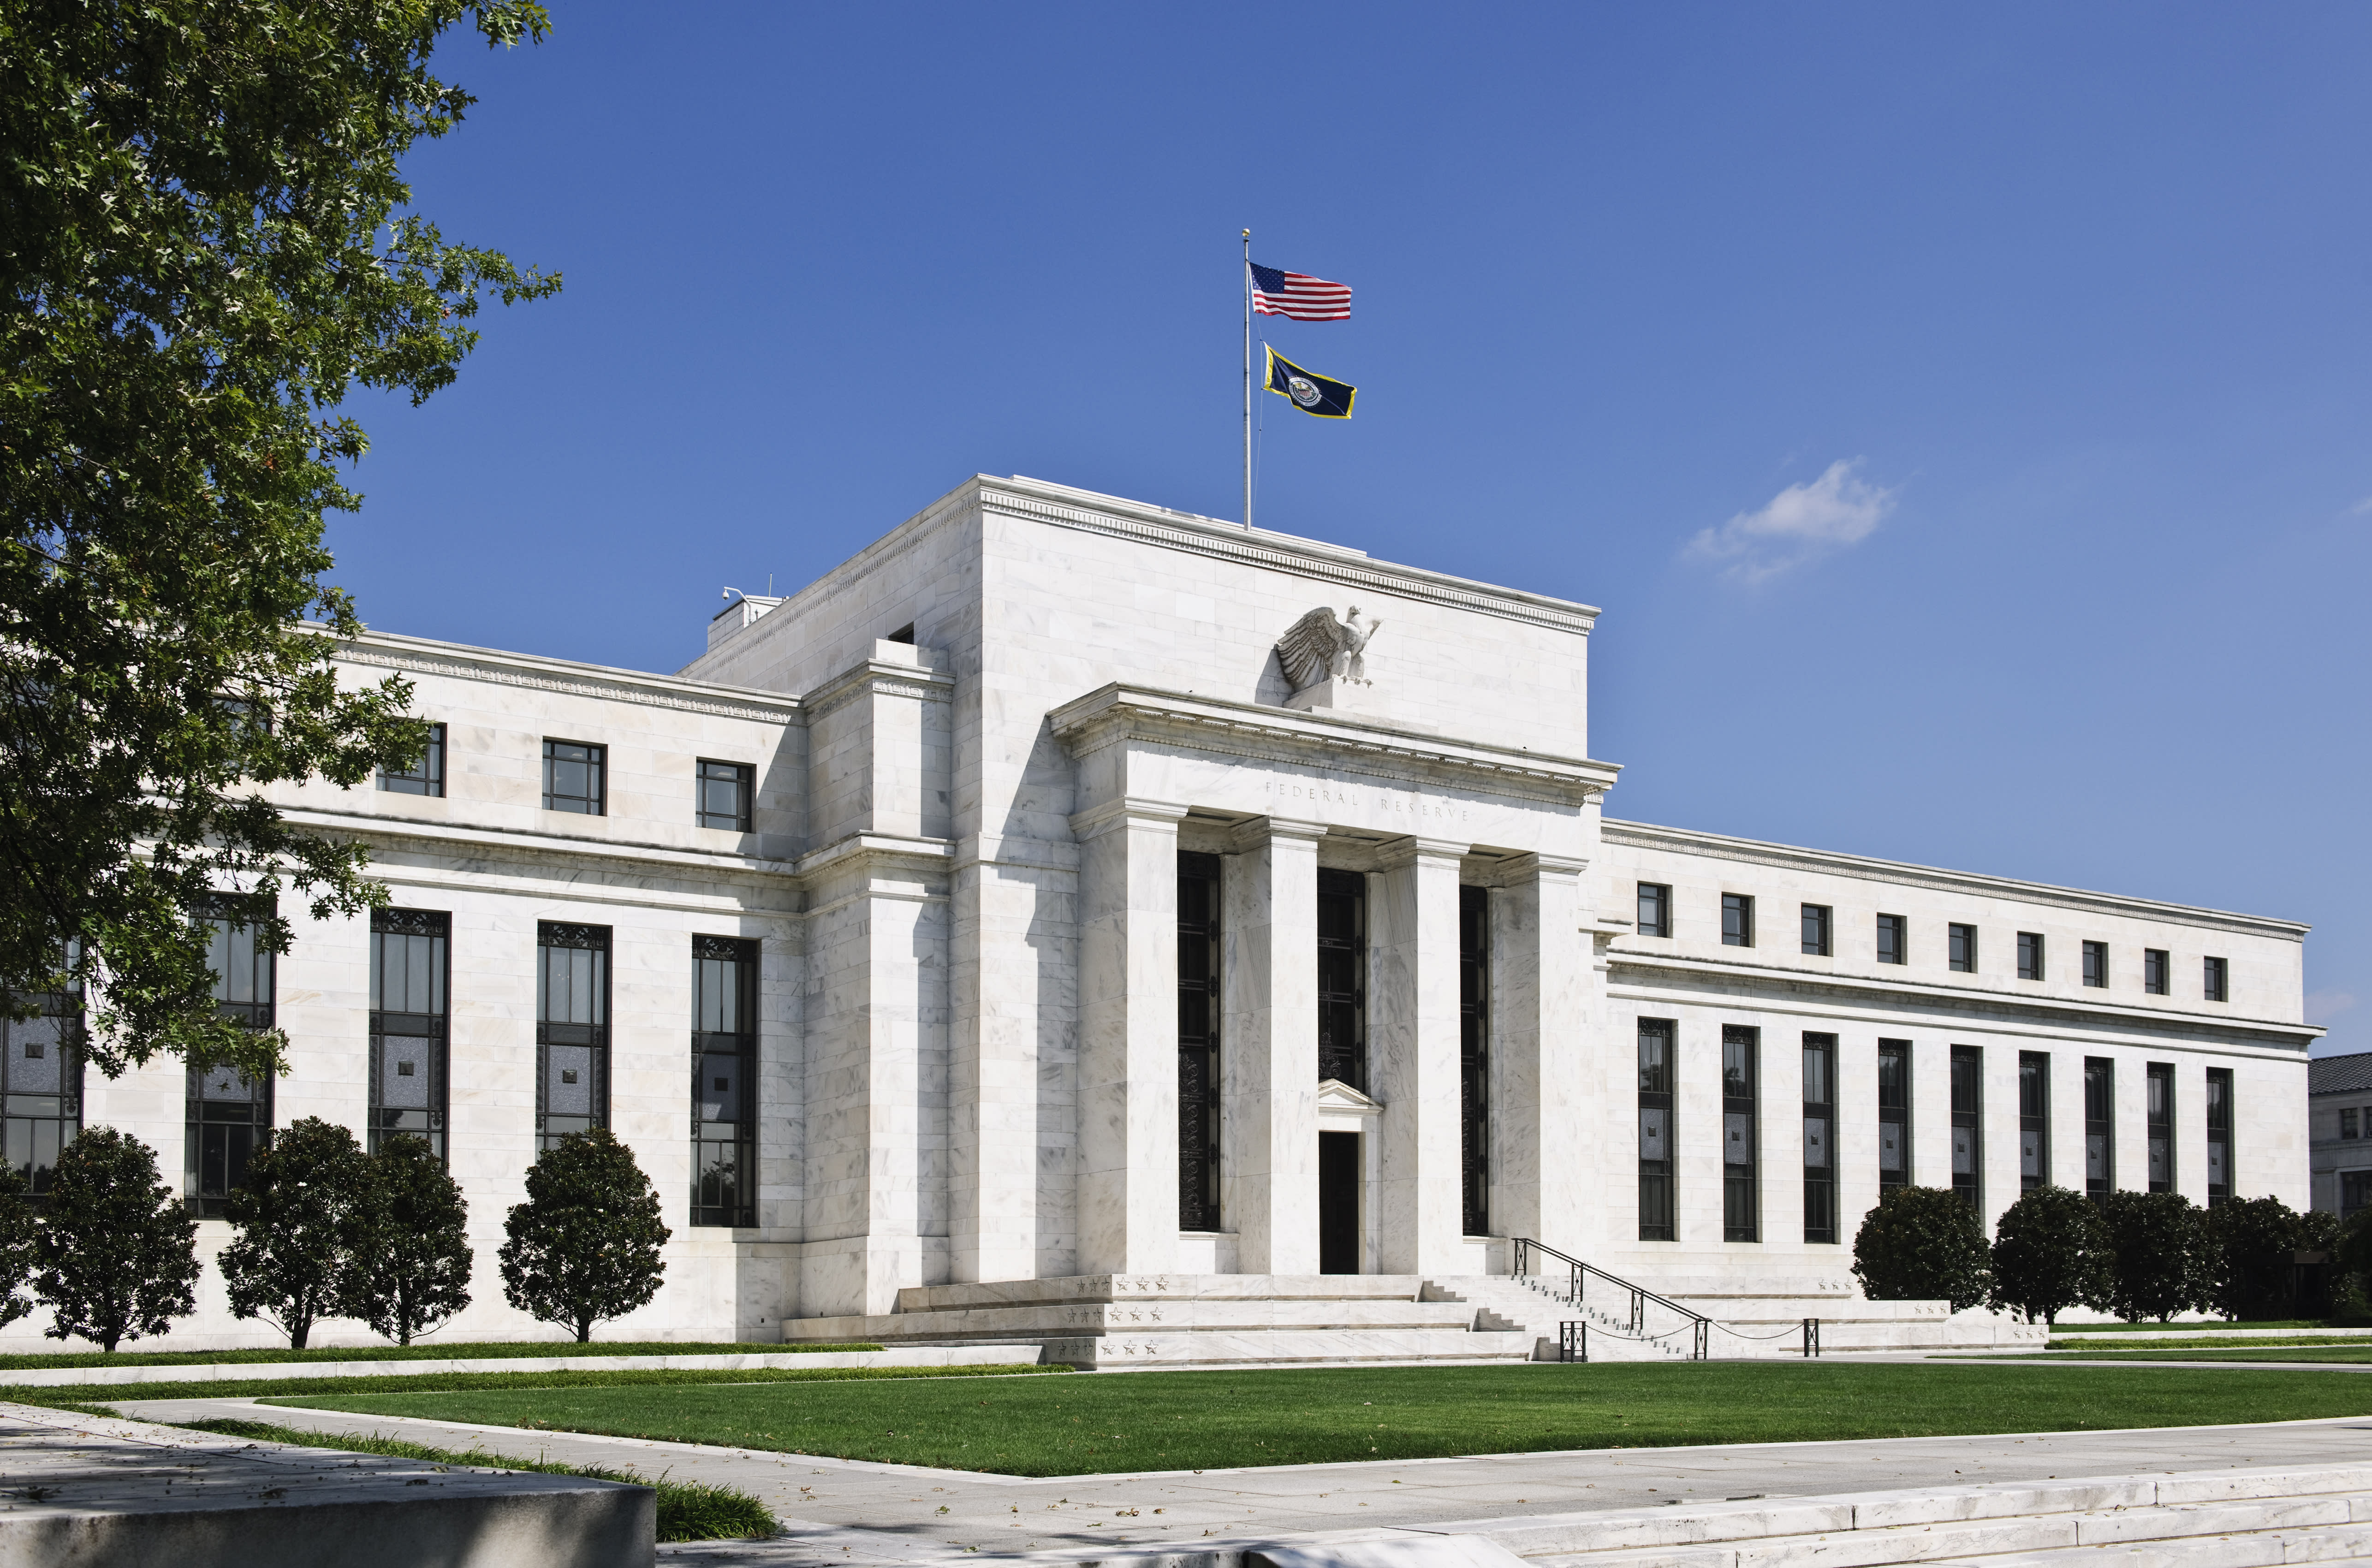 Fed expands Main Street loan program with lower minimums, extended terms